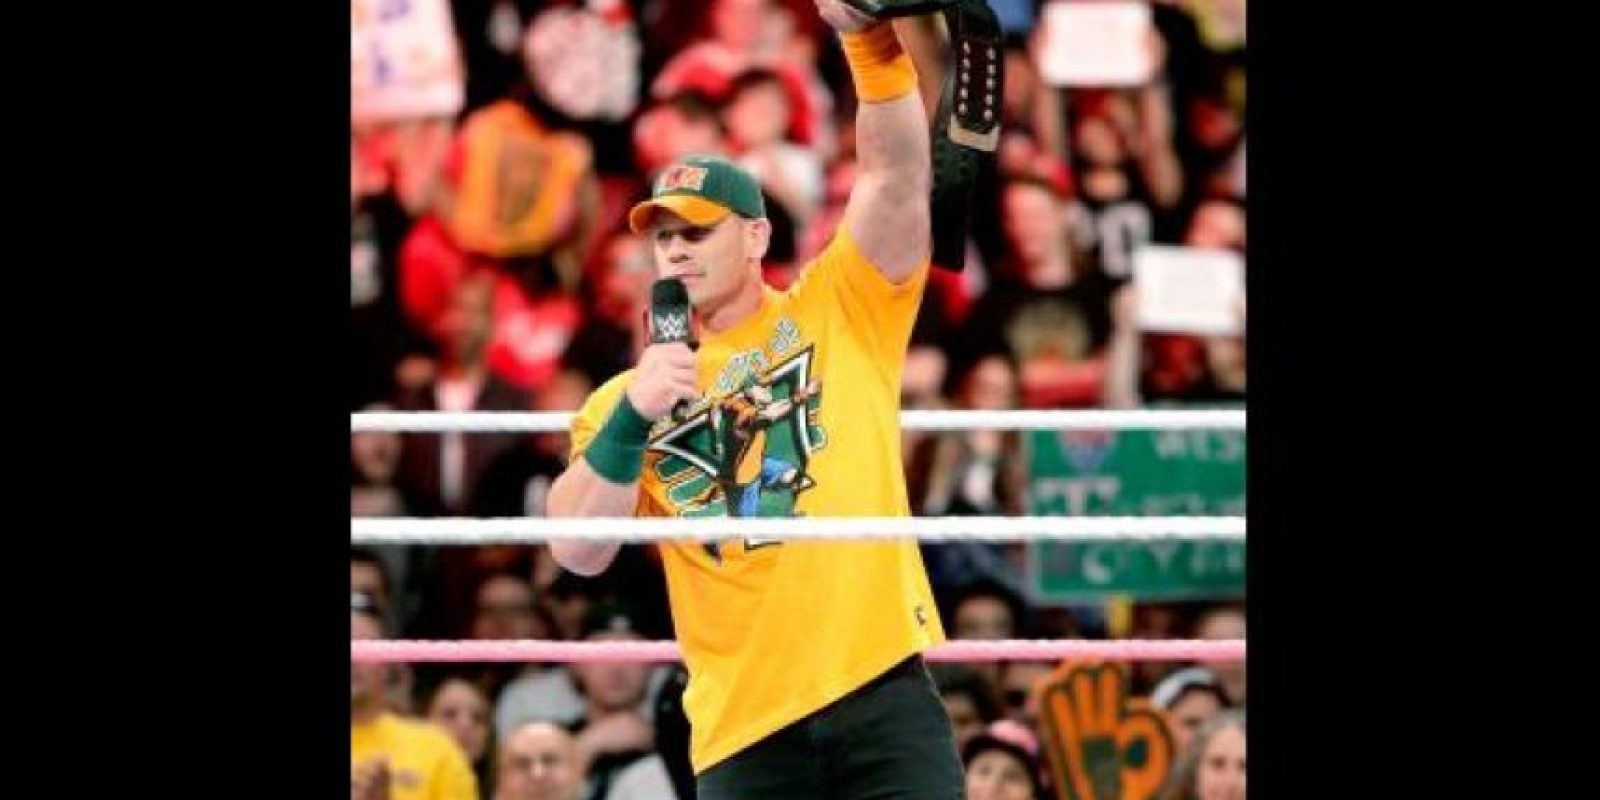 10. Es hincha de los Boston Red Sox, Tampa Bay Rays, Boston Celtics y New England Patriots Foto: WWE